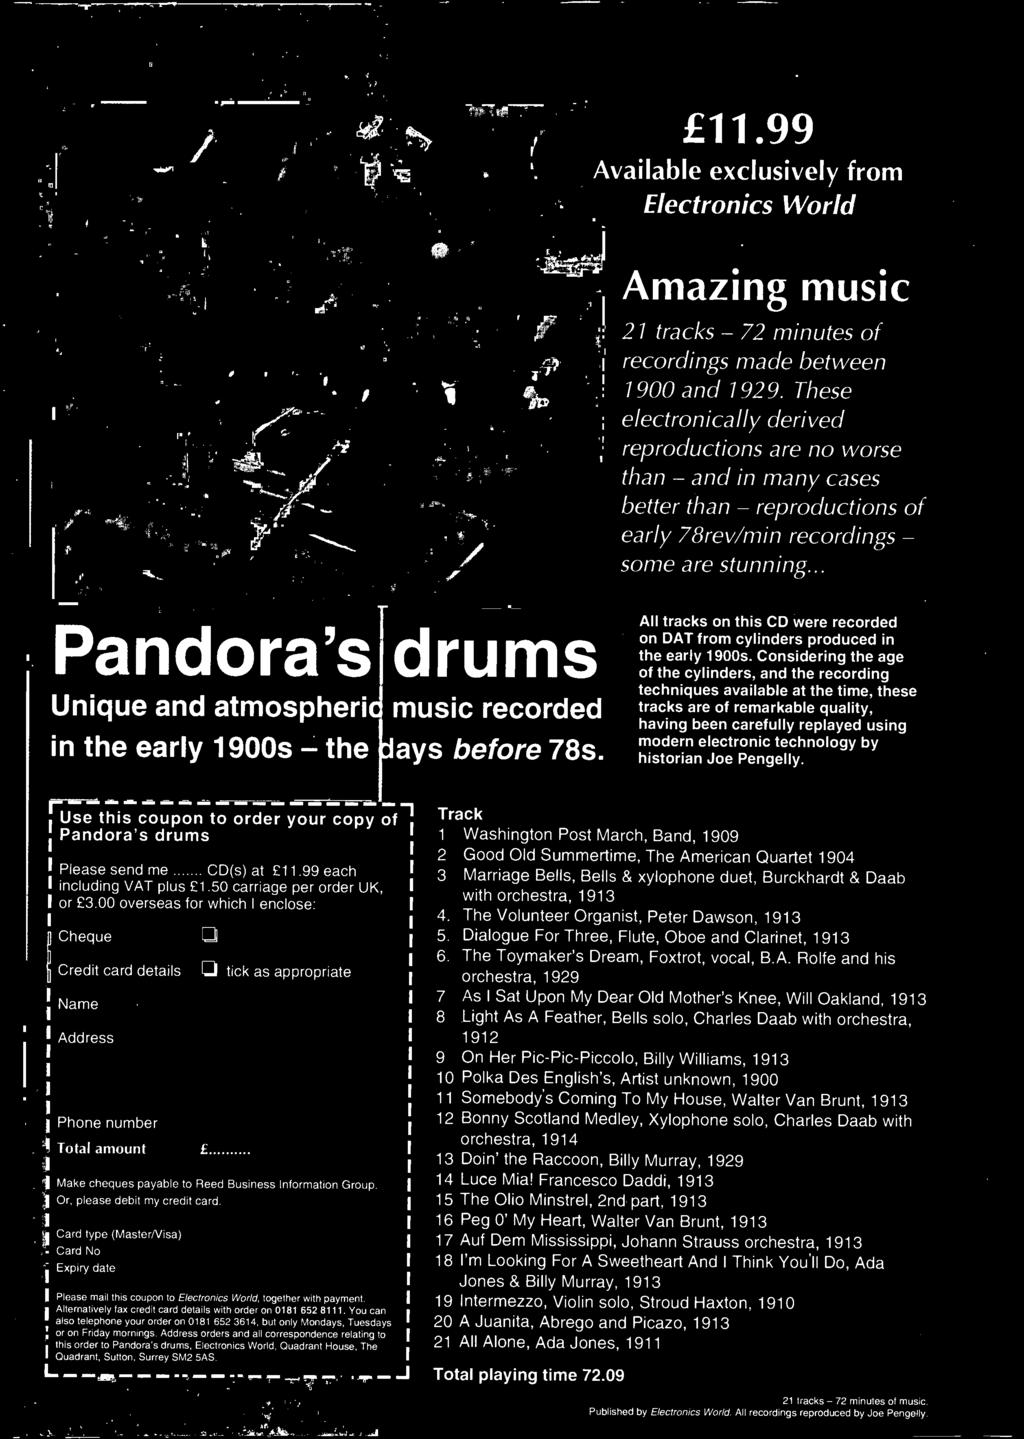 historian Joe Pengelly. ruse this coupon to order your copy of Pandora's drums Please send me CD(s) at 11.99 each including VAT plus 1.50 carriage per order UK, or 3.